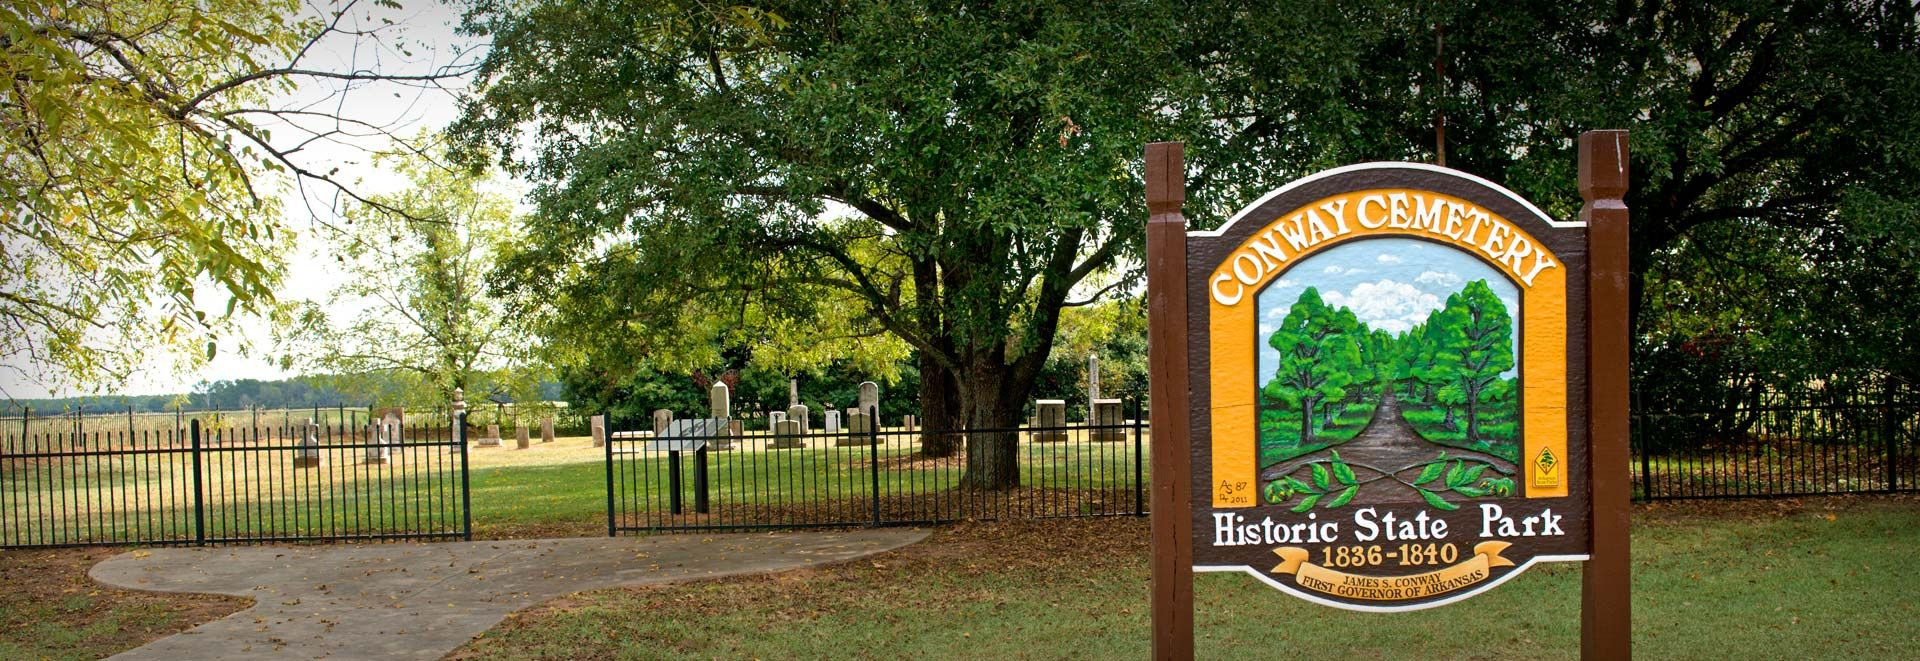 Conway Cemetery State Park in Lafayette County, Arkansas